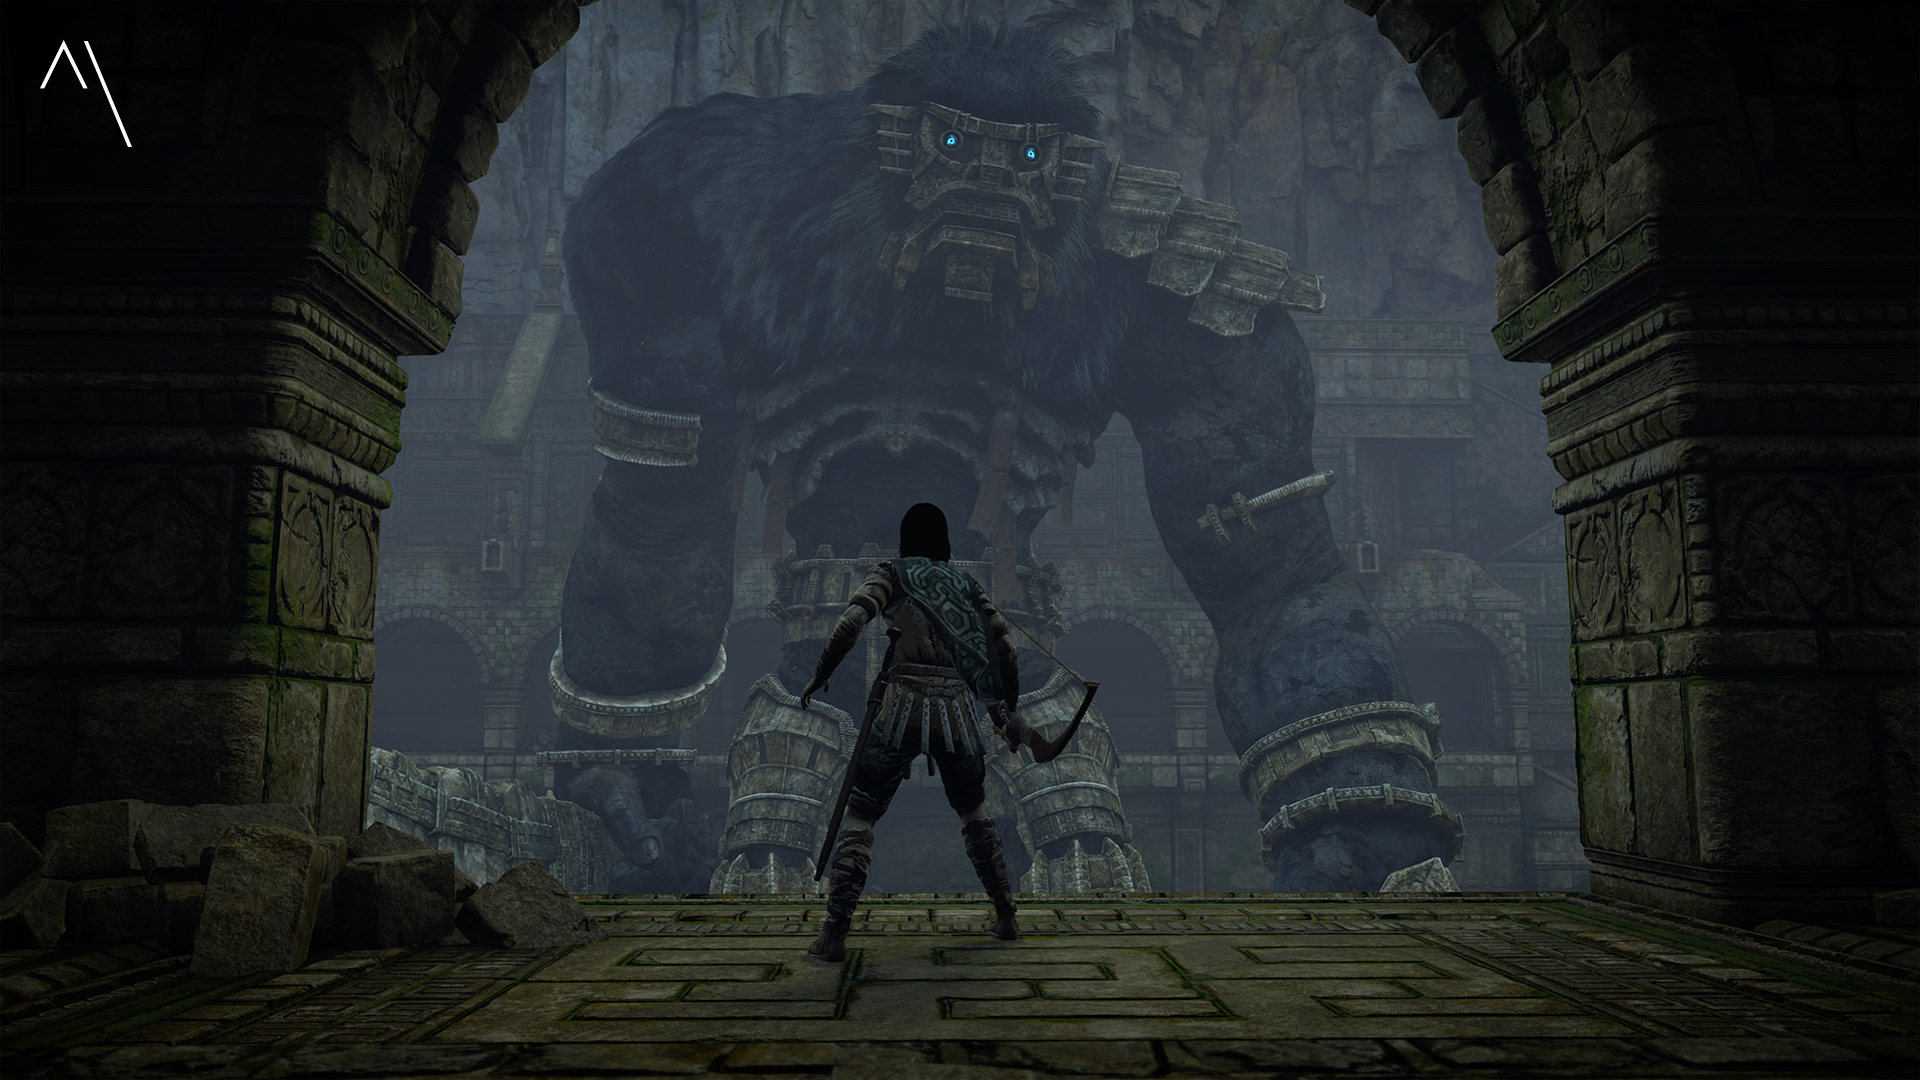 TiG Snaps | Shadow of the Colossus